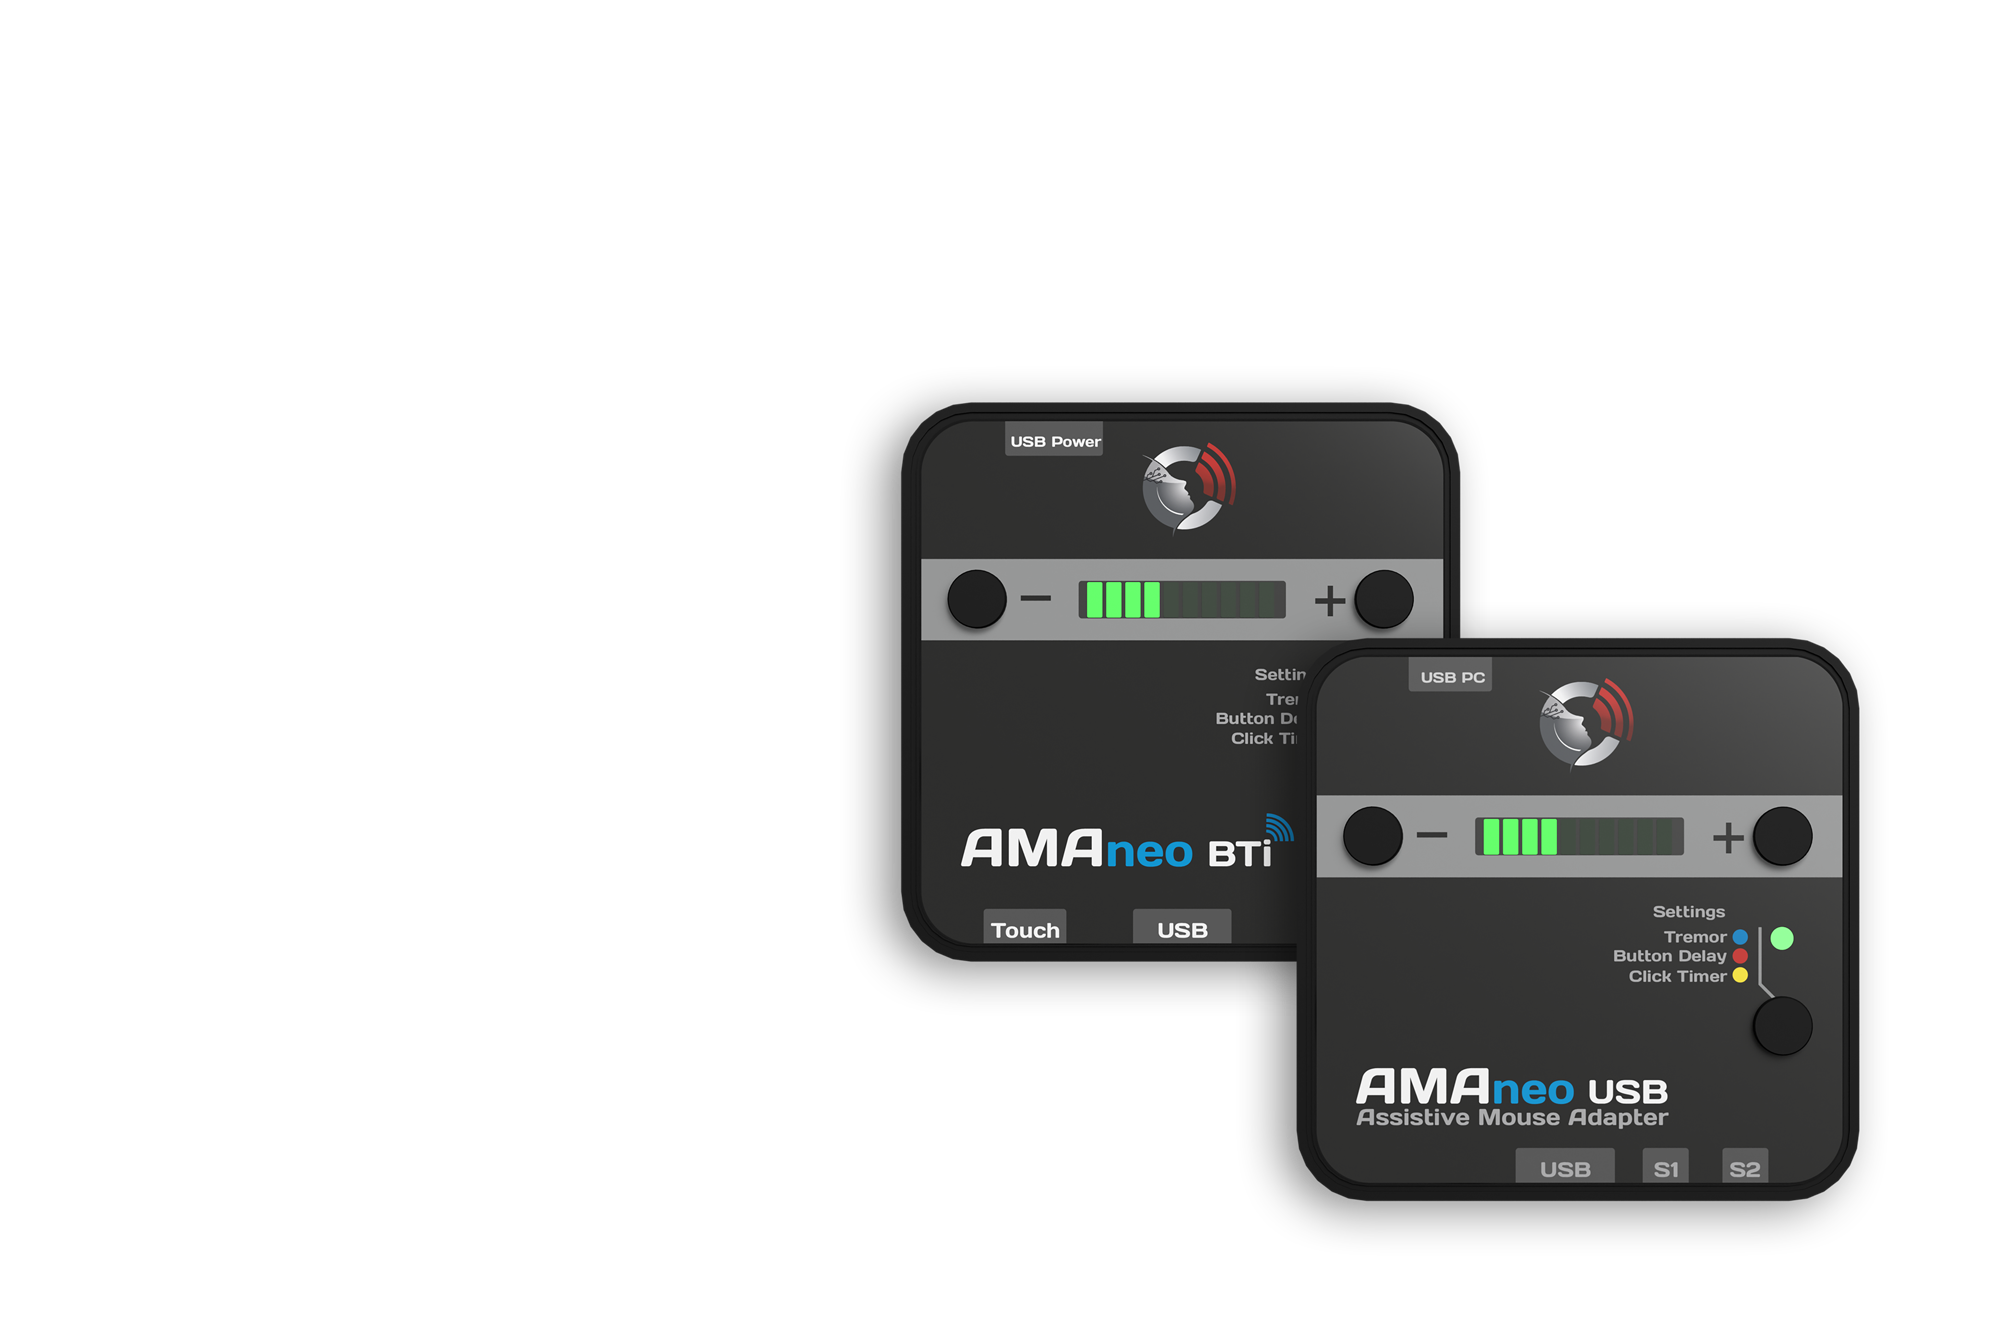 AMAneo-Mausadapter_TopView_Cover2_web